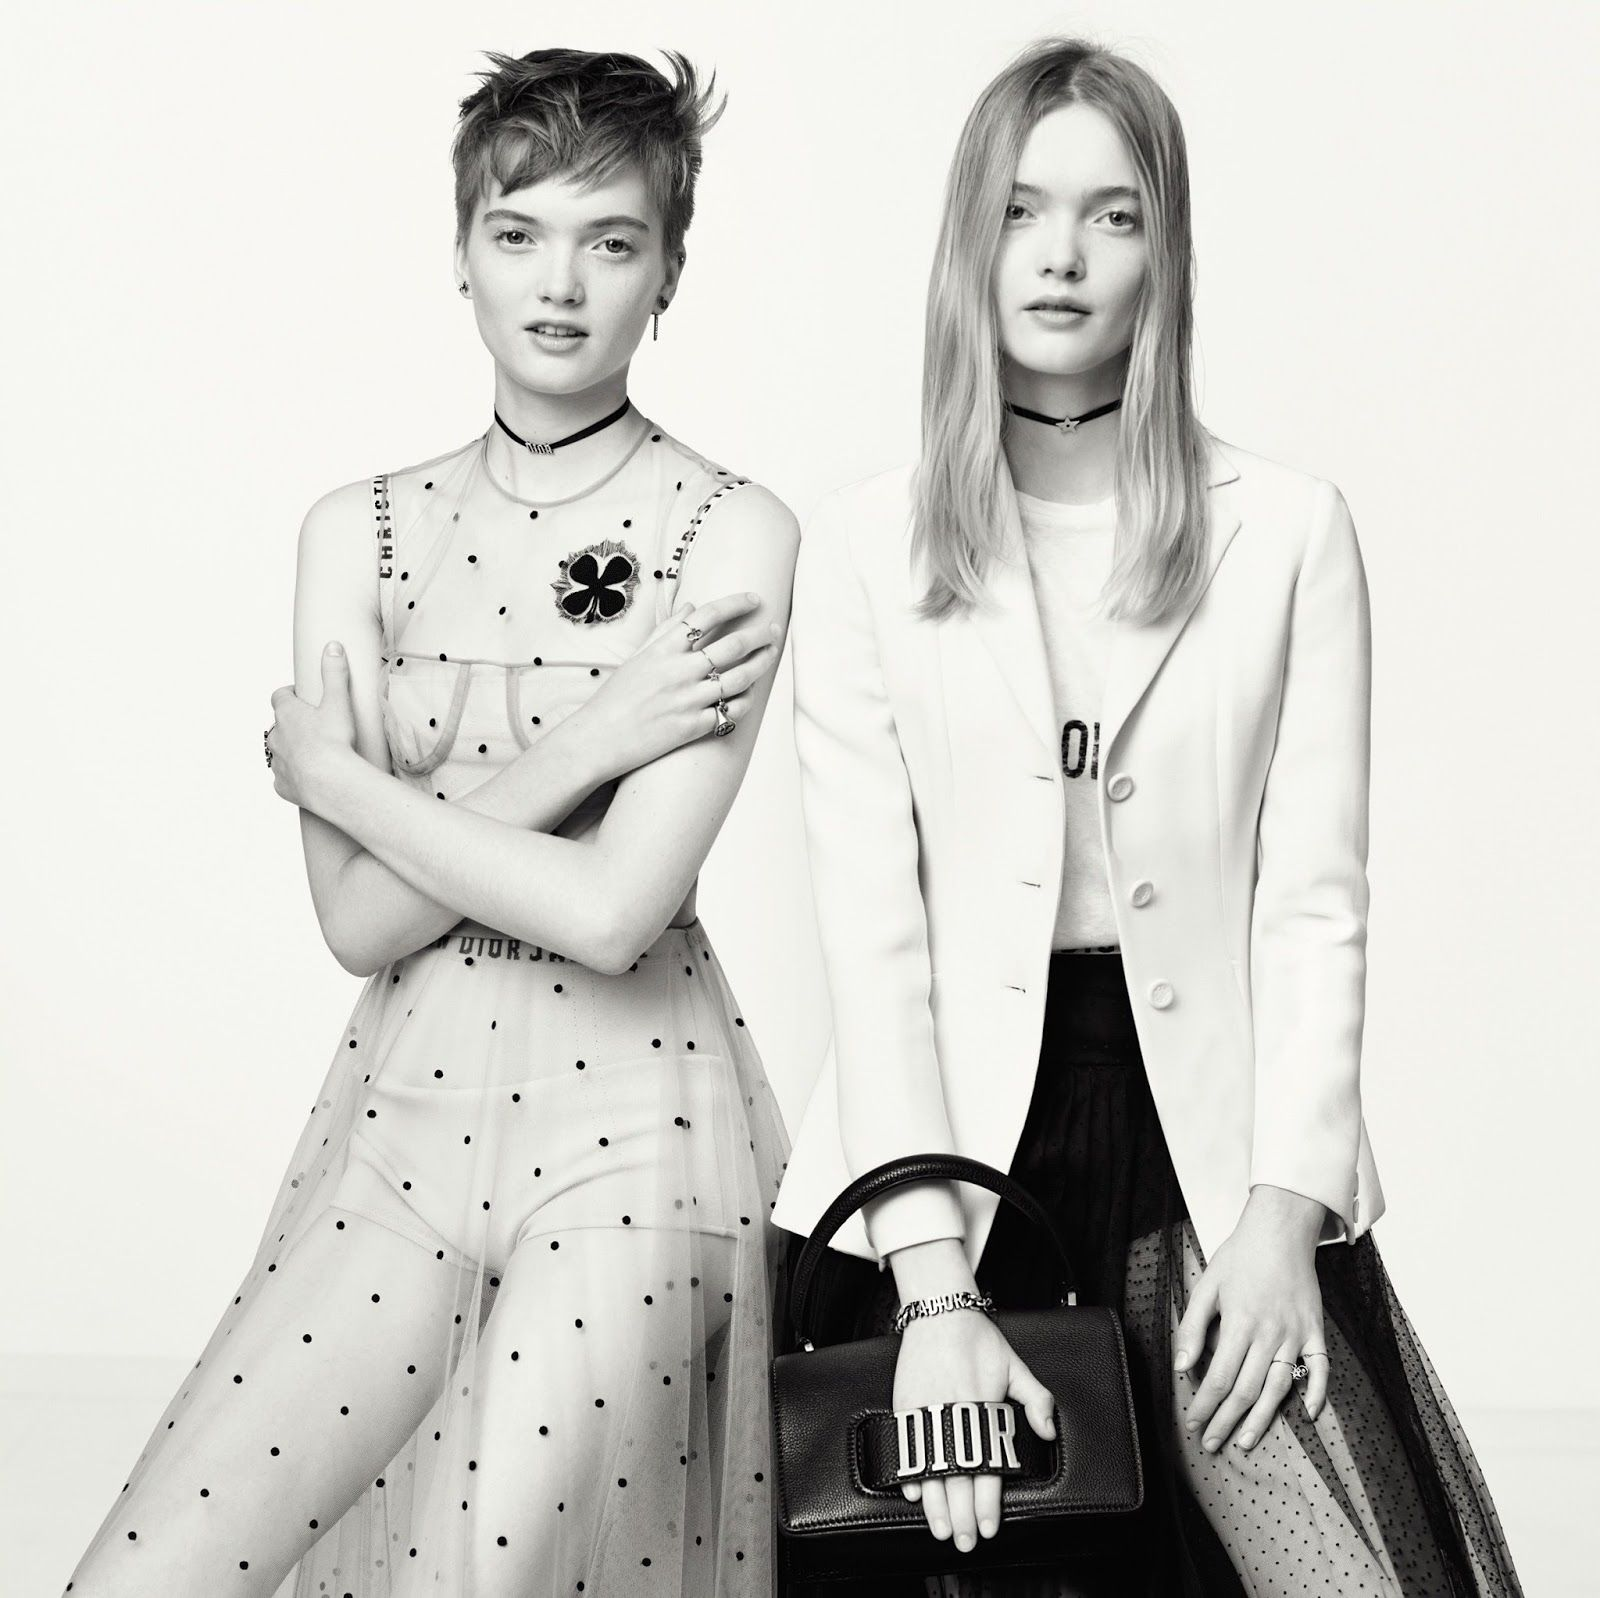 Dior christian spring summer campaign